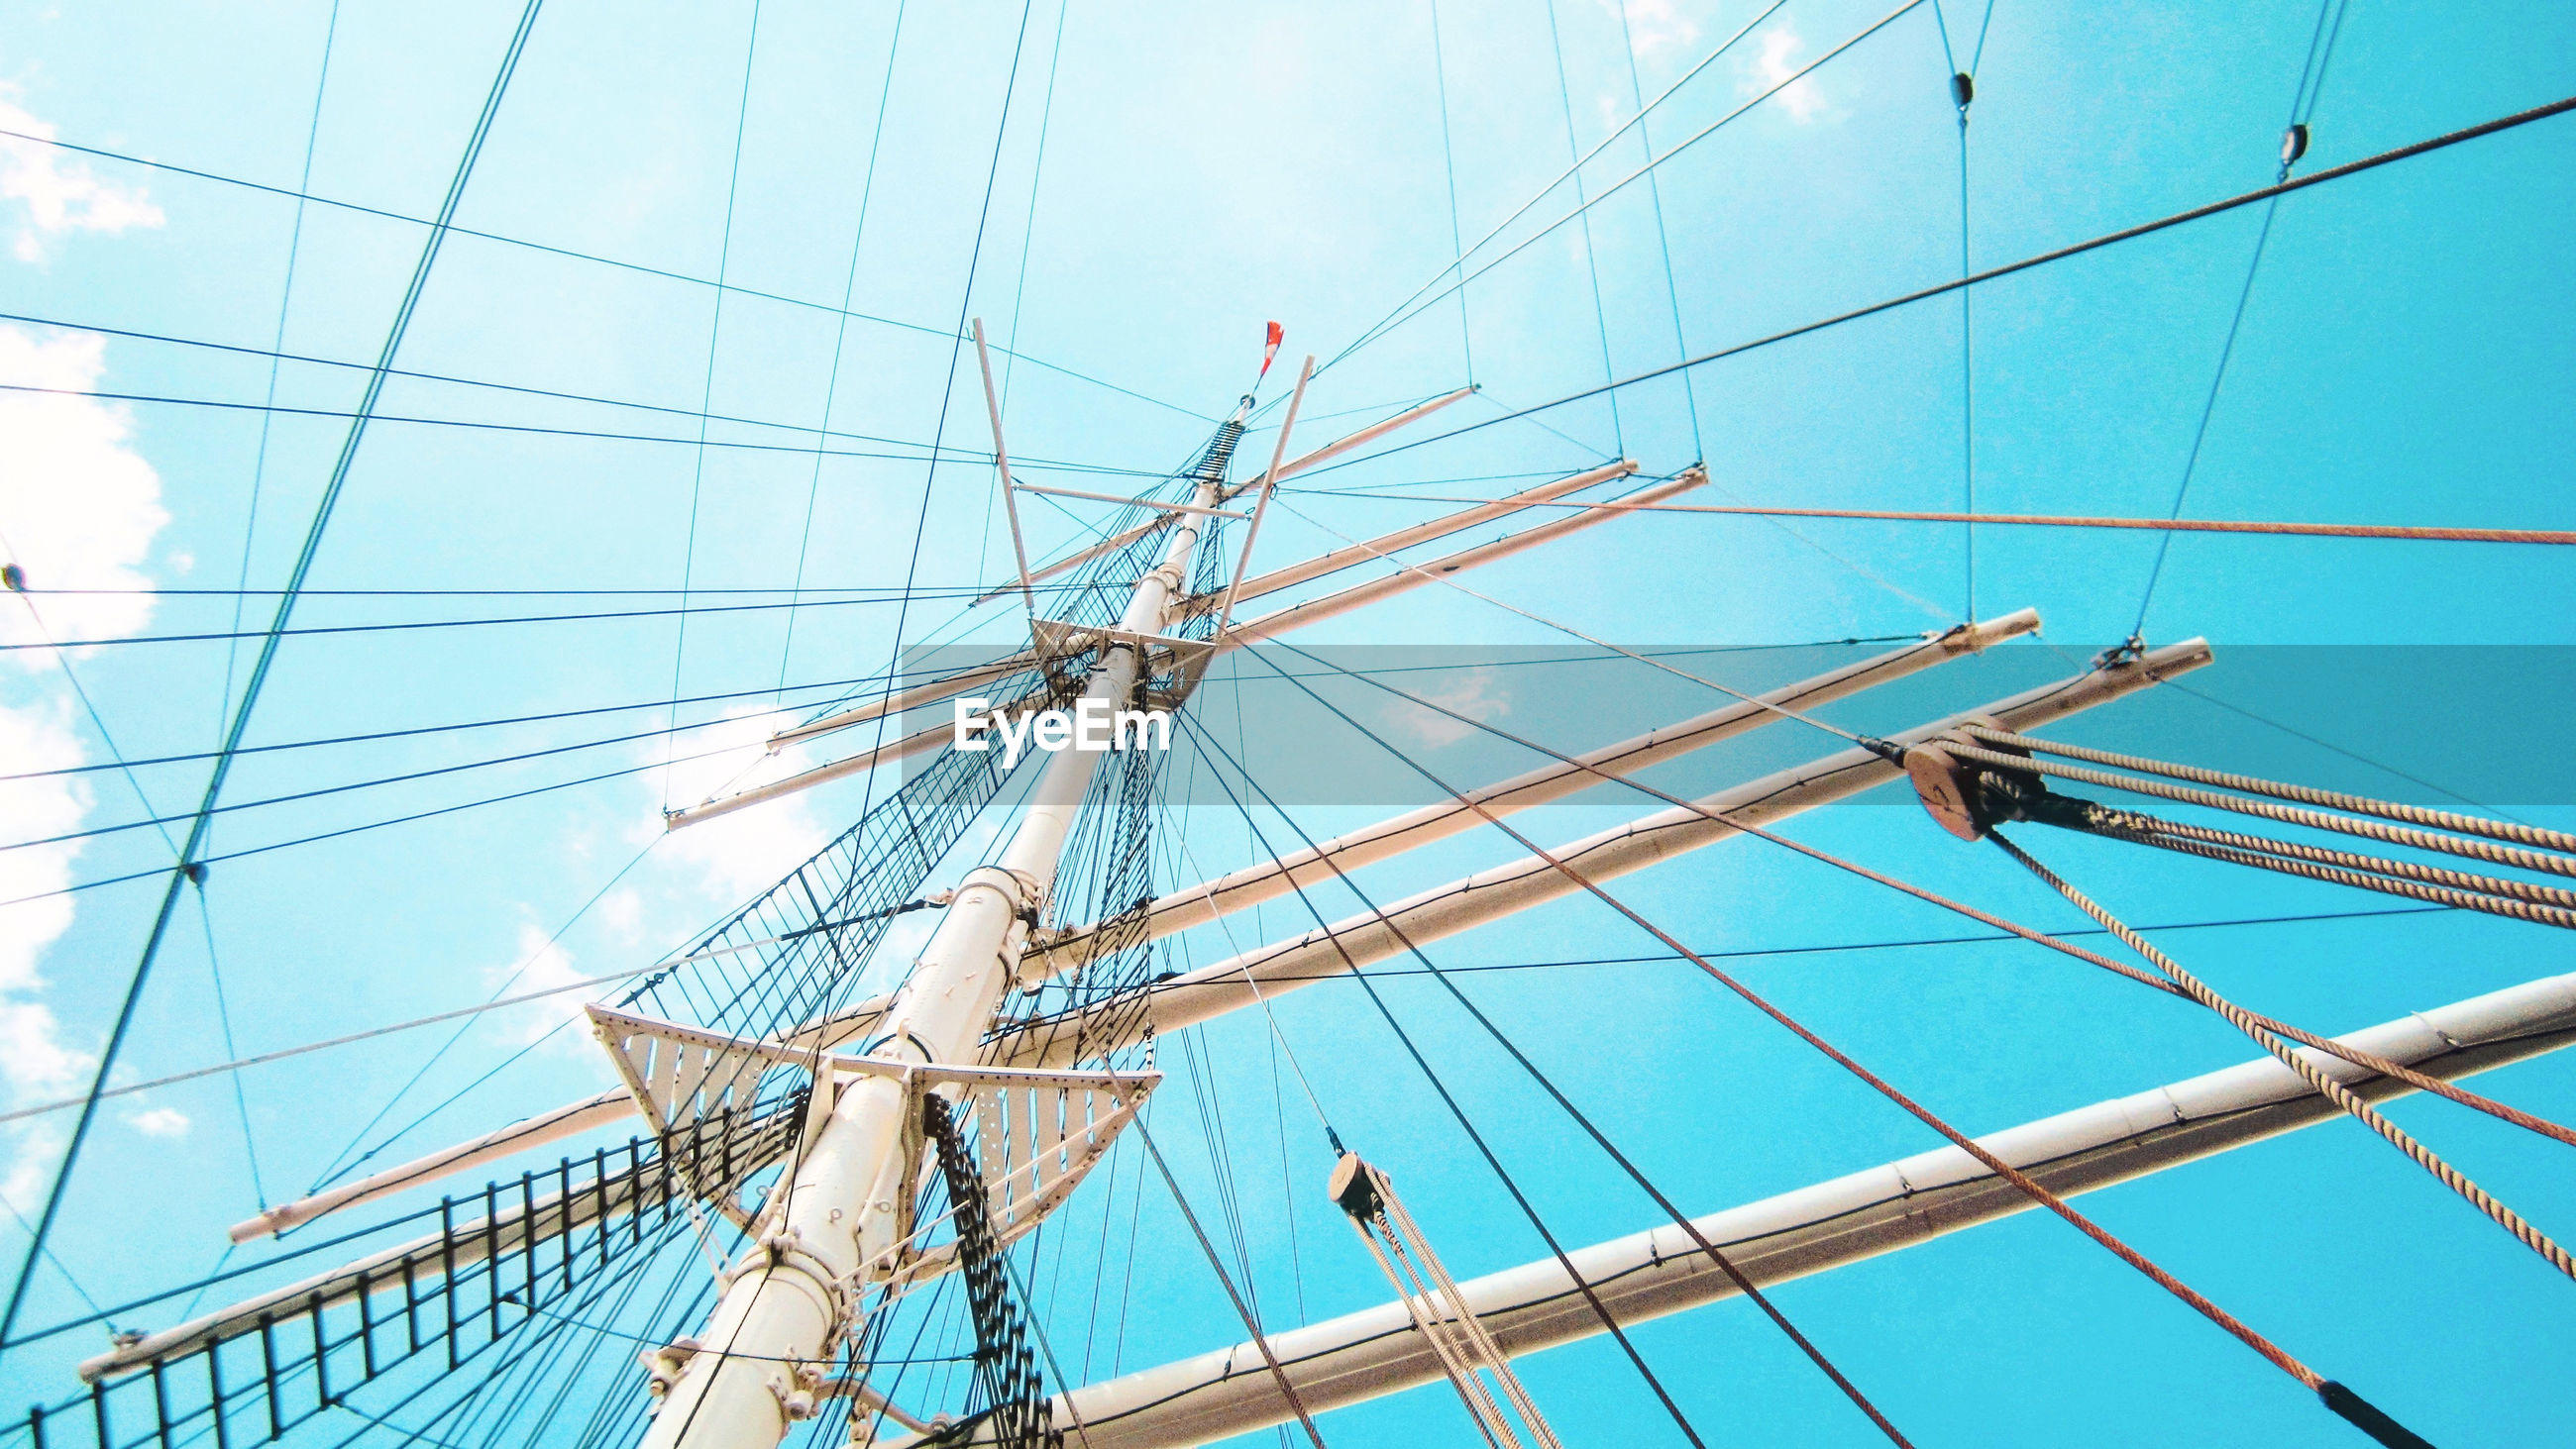 LOW ANGLE VIEW OF SAILBOAT ON MAST AGAINST BLUE SKY